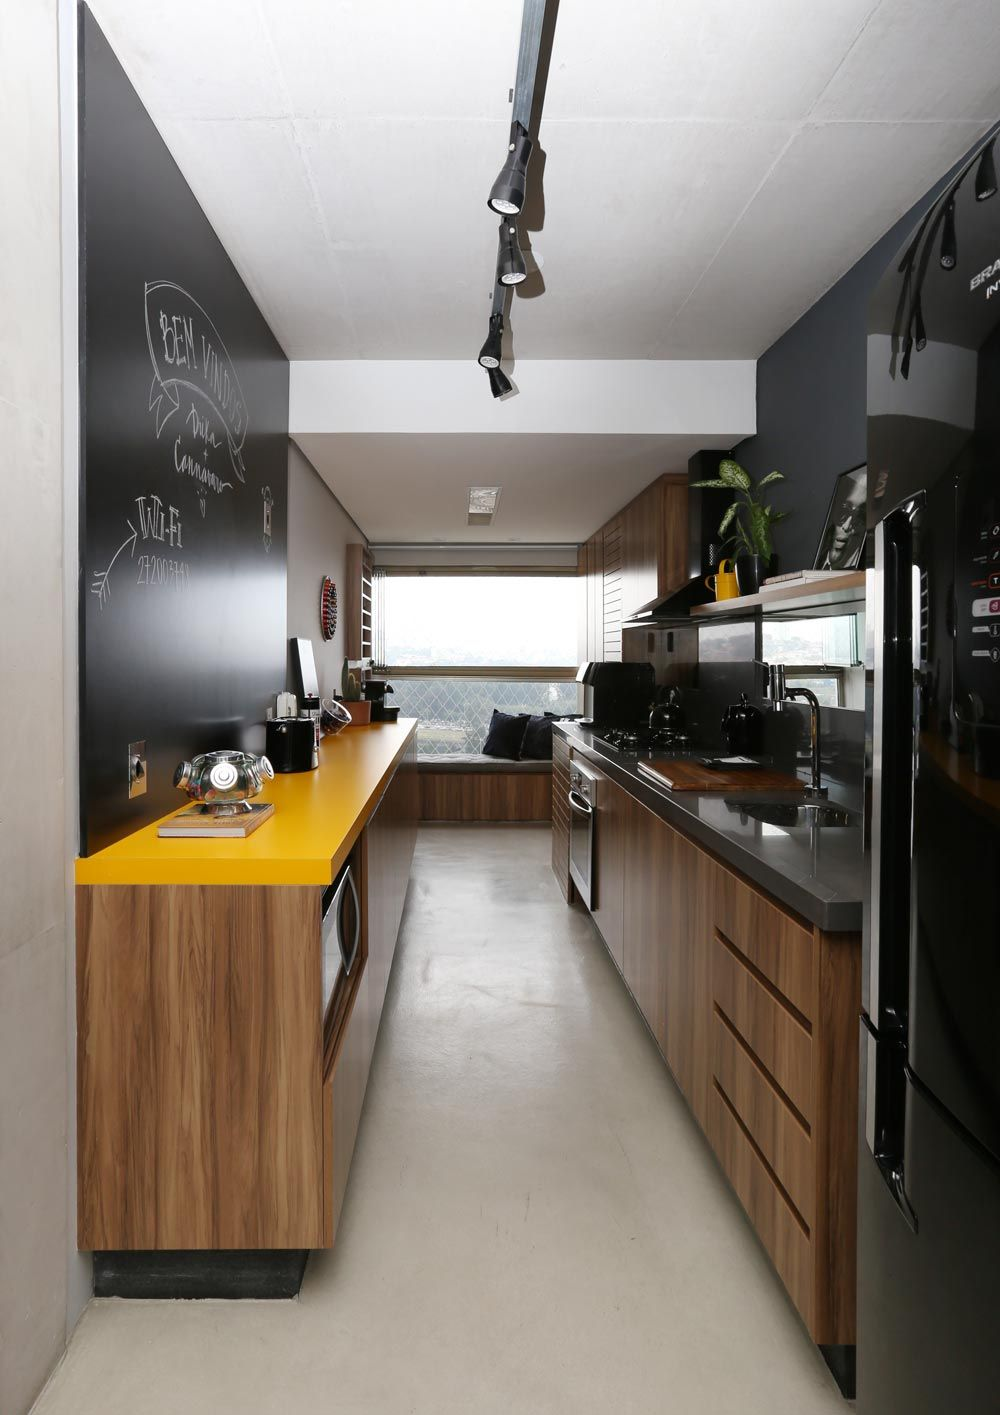 Yellow countertops and wood furniture